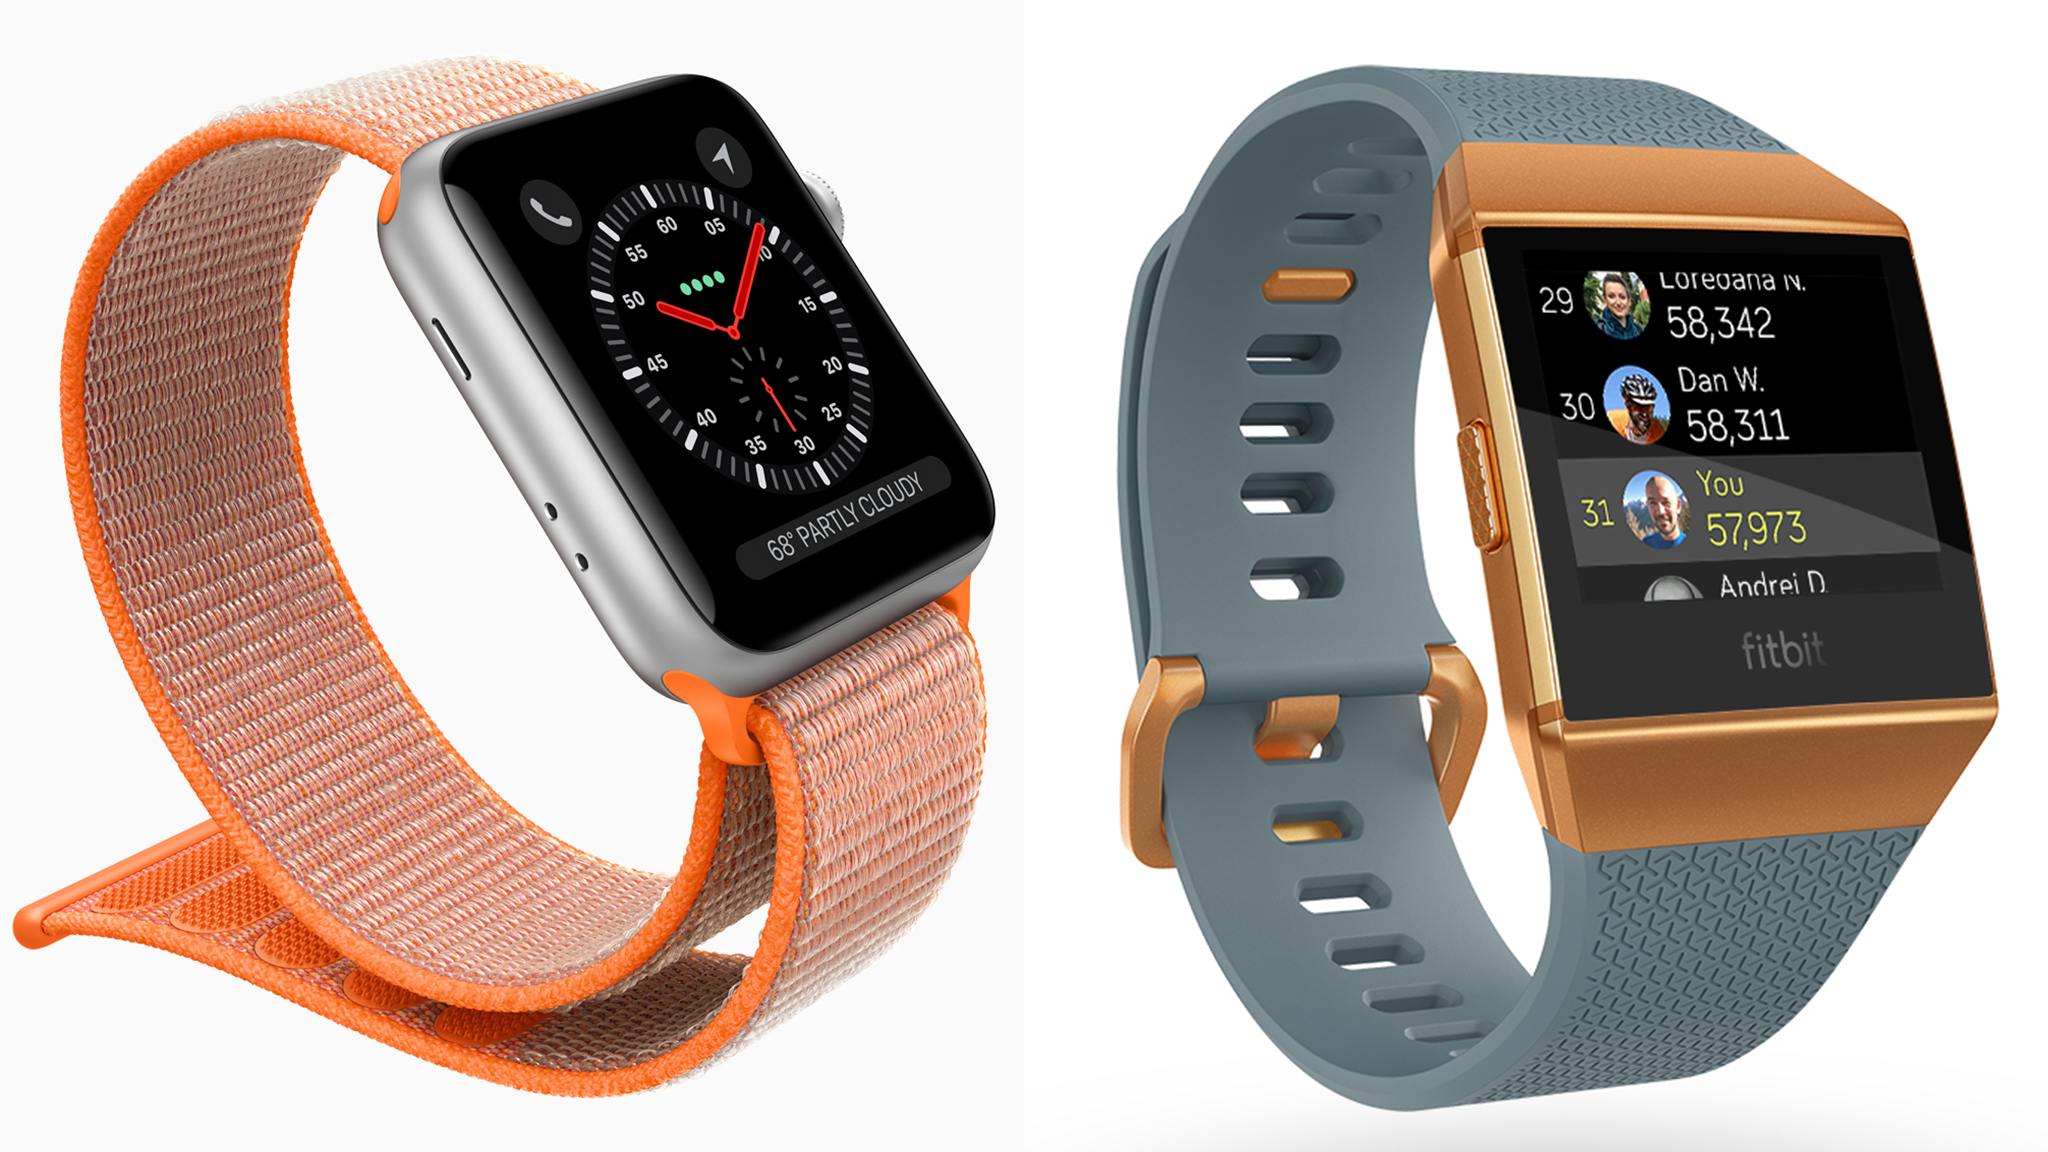 lte with t verge watch connectivity apple don watches and screen review connections battery the simulated series match vpavic i times life new missed features phone actual experience